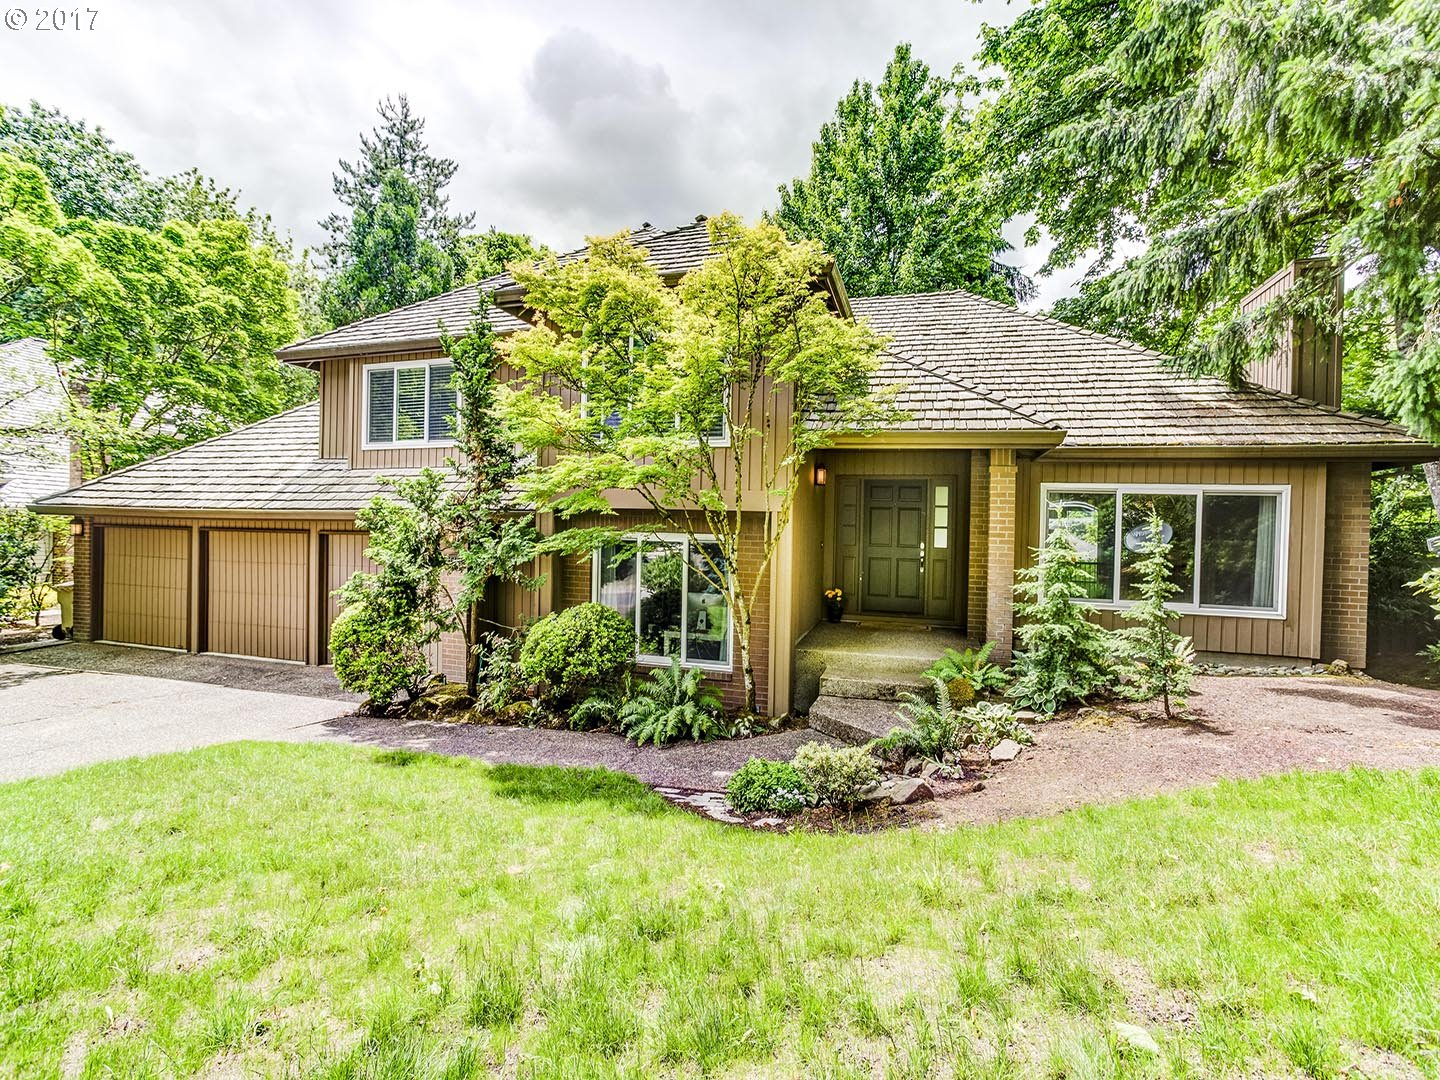 18120 DELENKA LN, Lake Oswego OR 97034